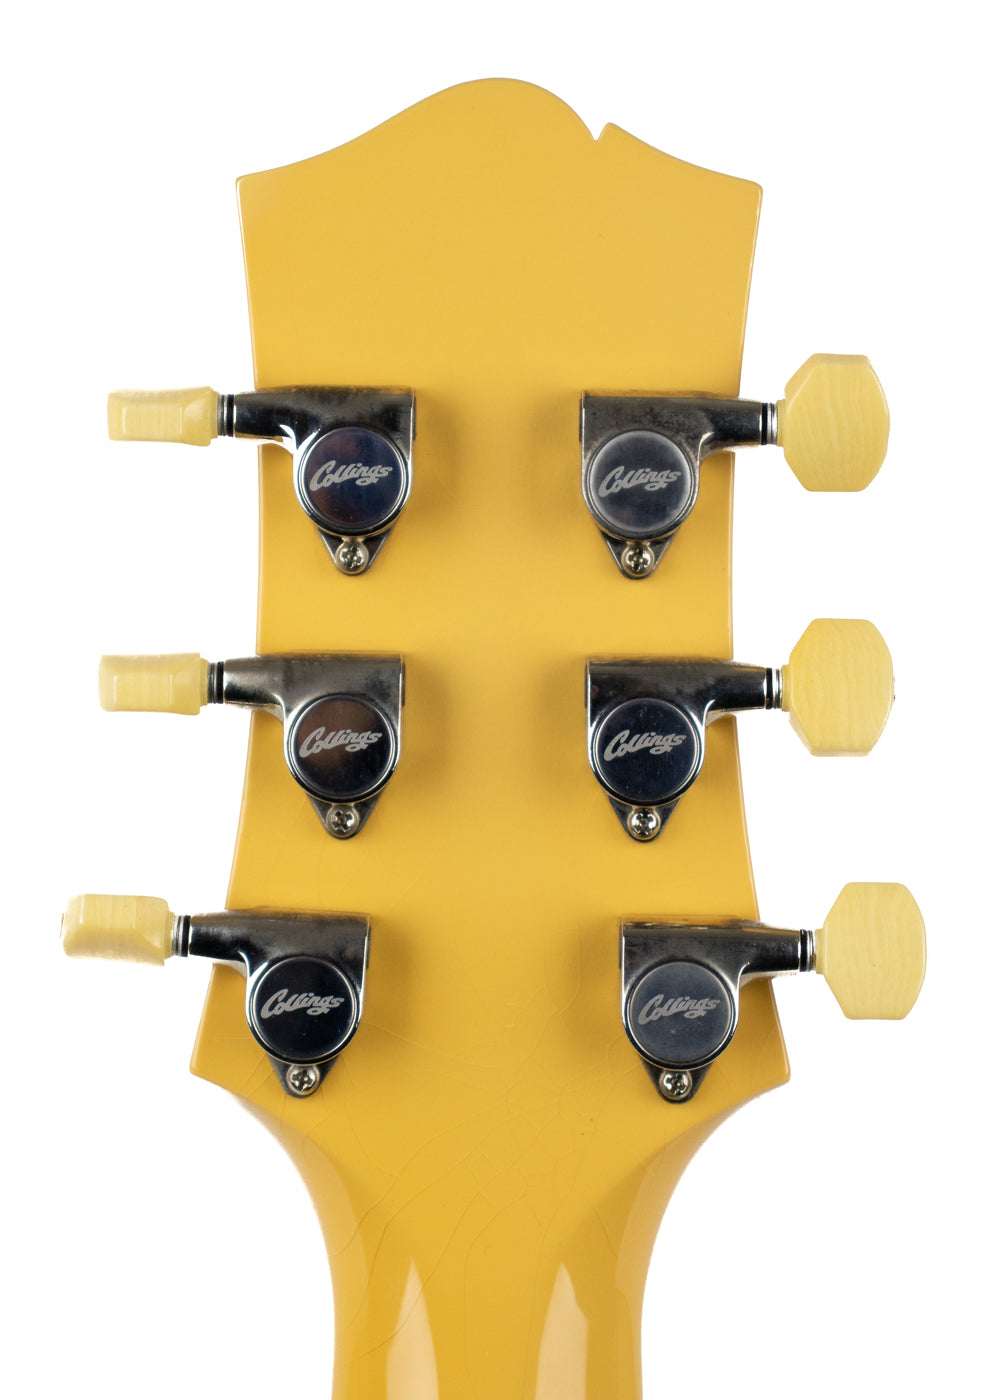 New Collings CL Deluxe Aged TV Yellow image 6